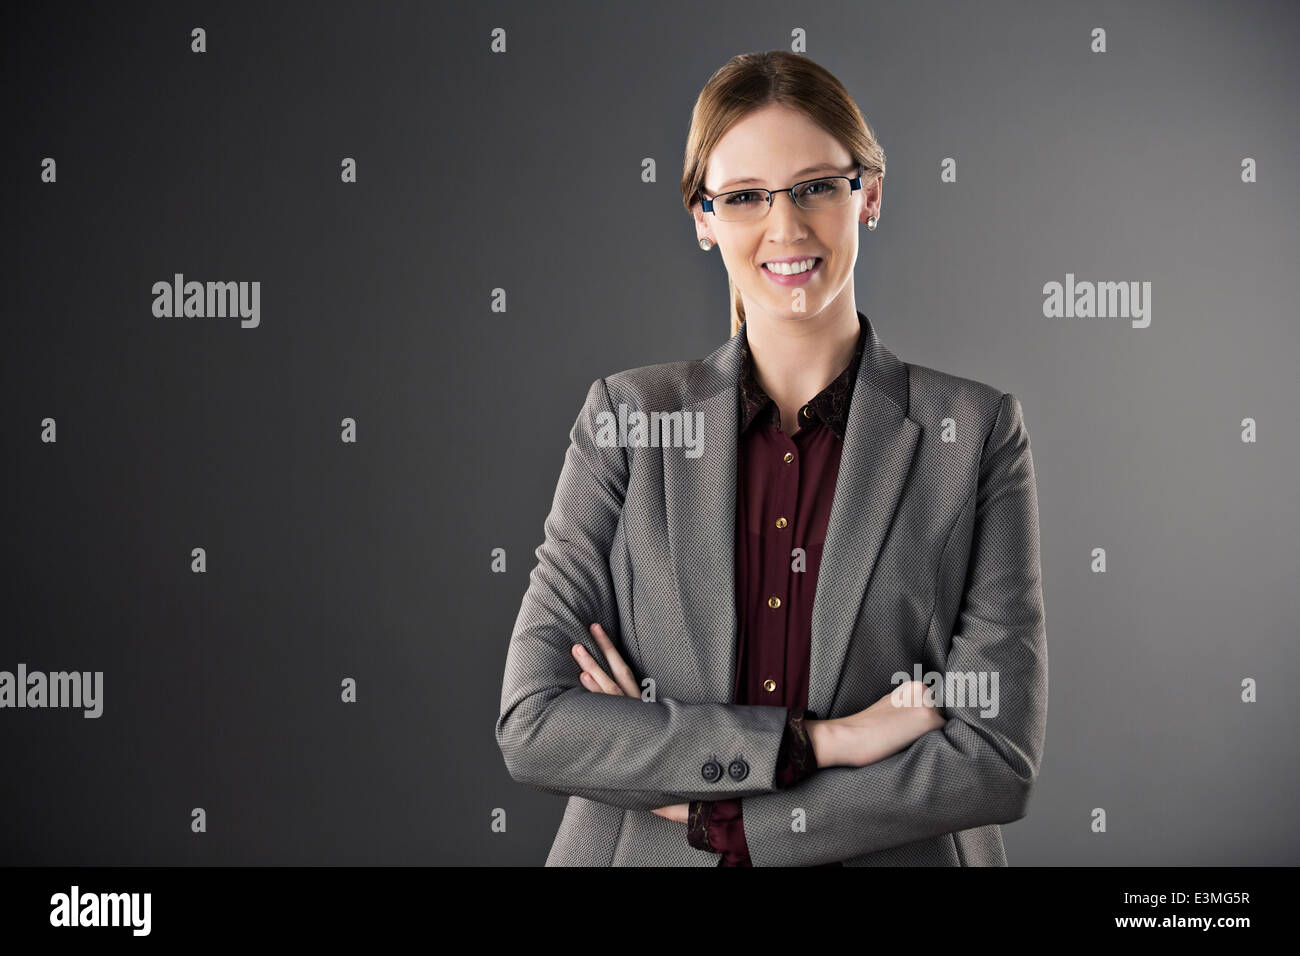 Portrait of confident businesswoman with arms crossed - Stock Image